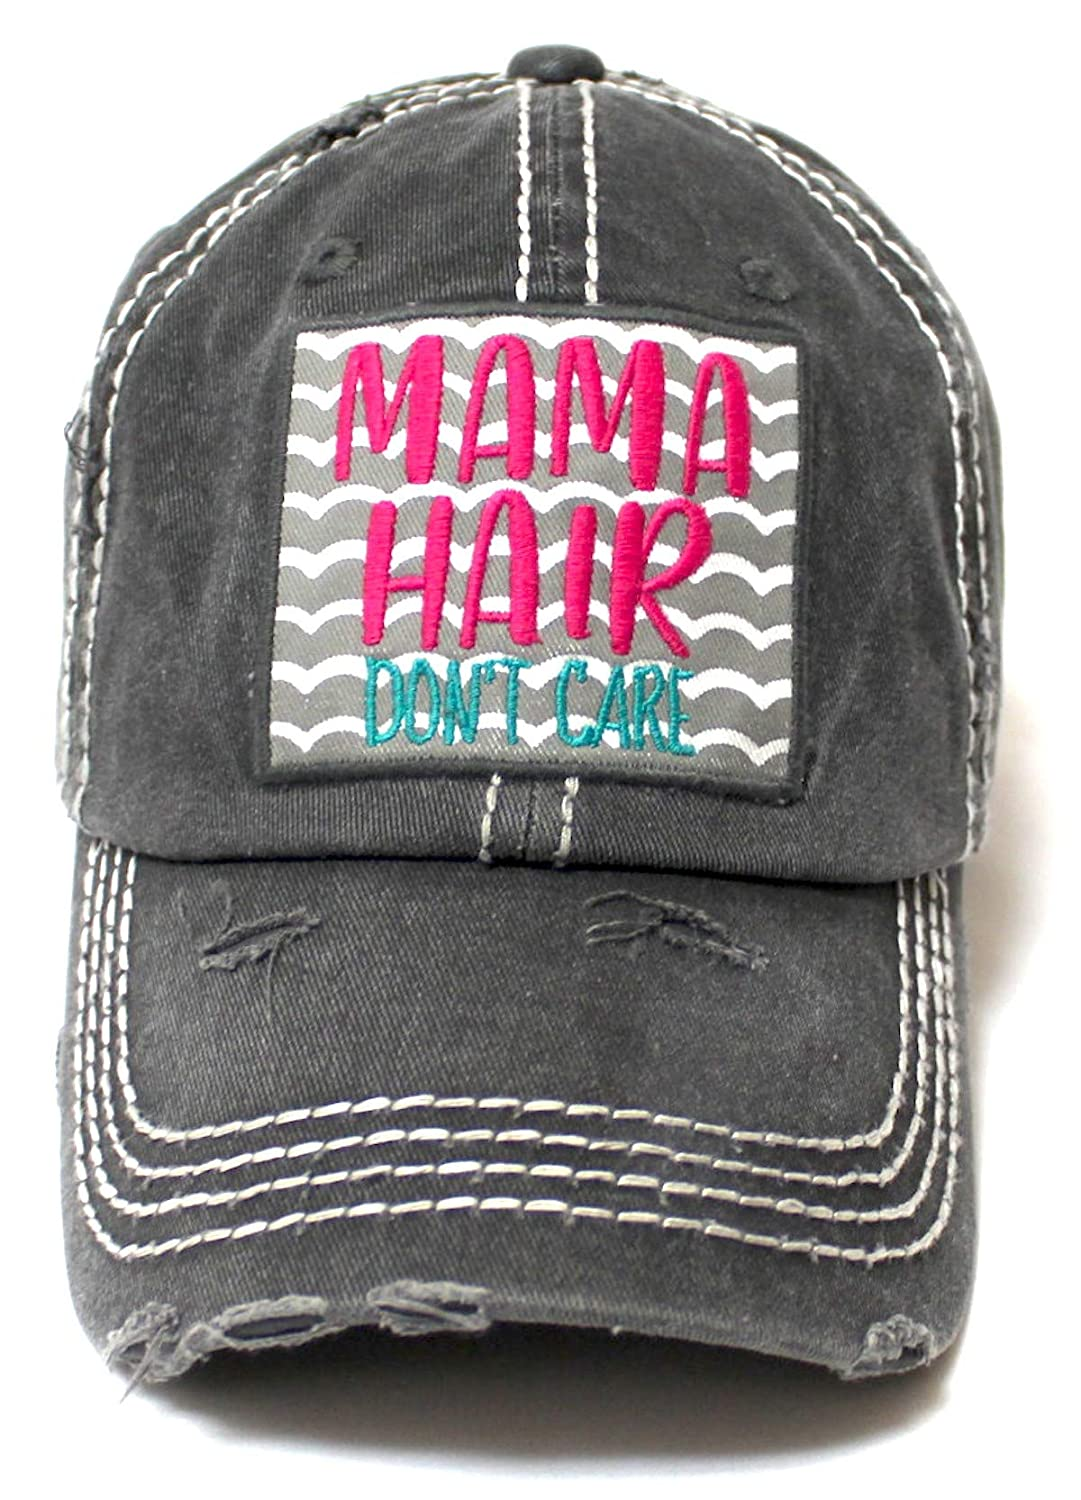 f628b360979d18 CAPS 'N VINTAGE Women's Beach Cap Mama Hair Don't Care Patch Embroidery  Adjustable Baseball Hat, Graphite Black at Amazon Women's Clothing store: